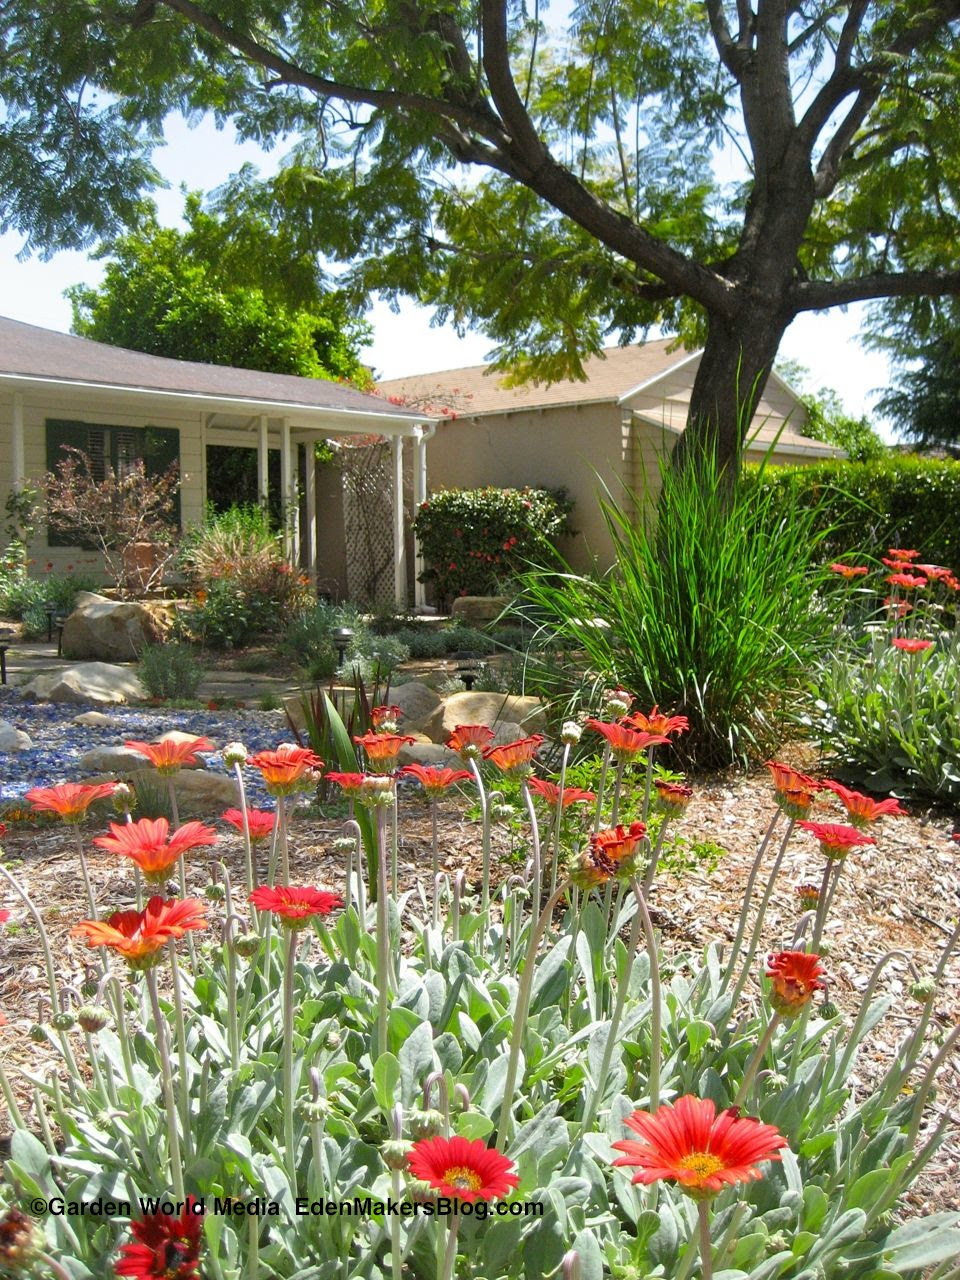 No-Lawn Yard Designs | Eden Makers Blog by Shirley Bovshow